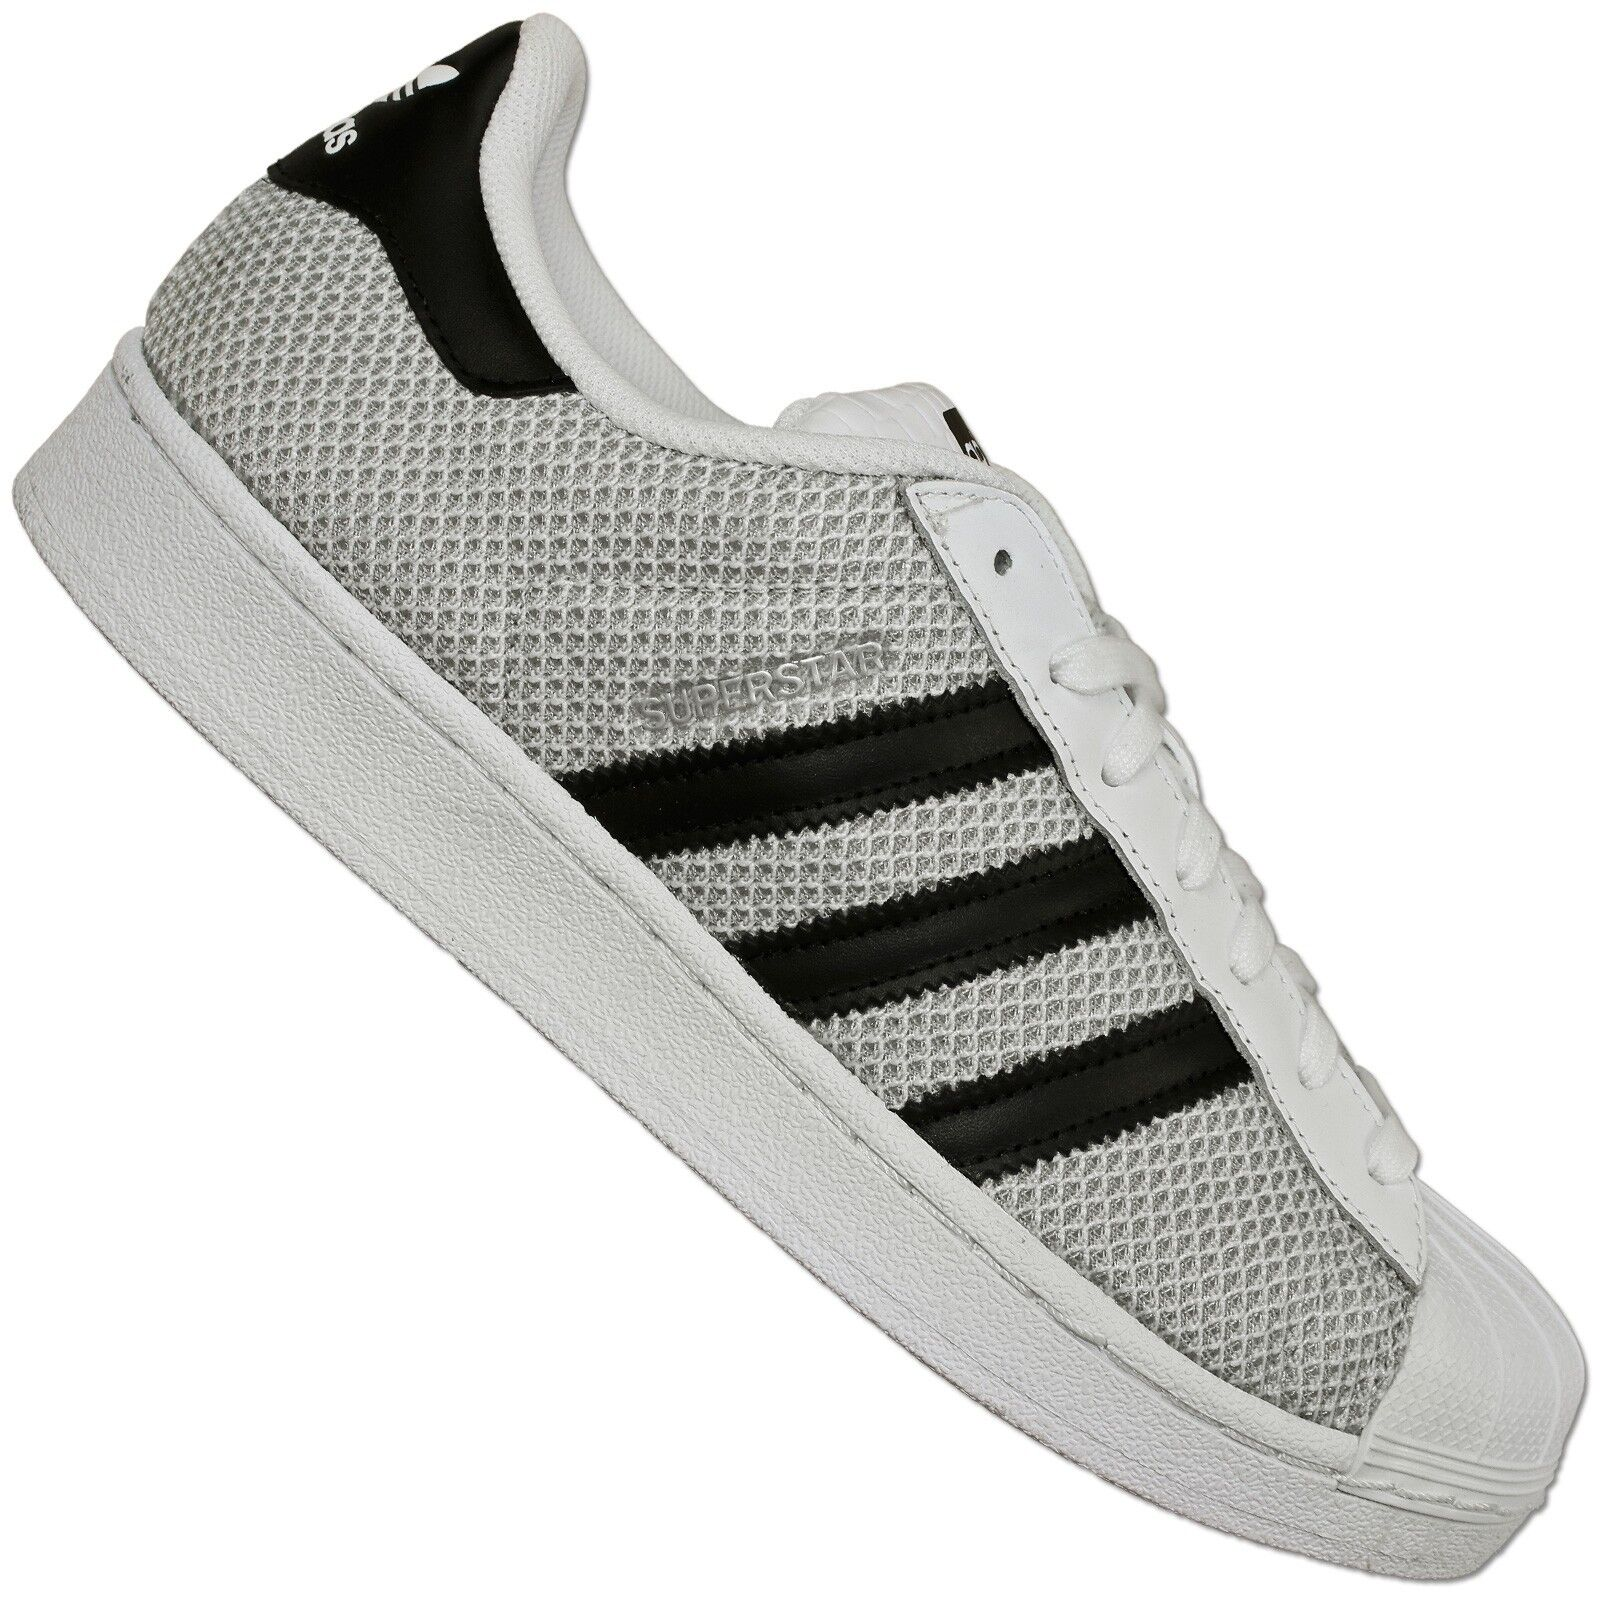 adidas Superstar Weave Pack S77853 | White, Black, Grey